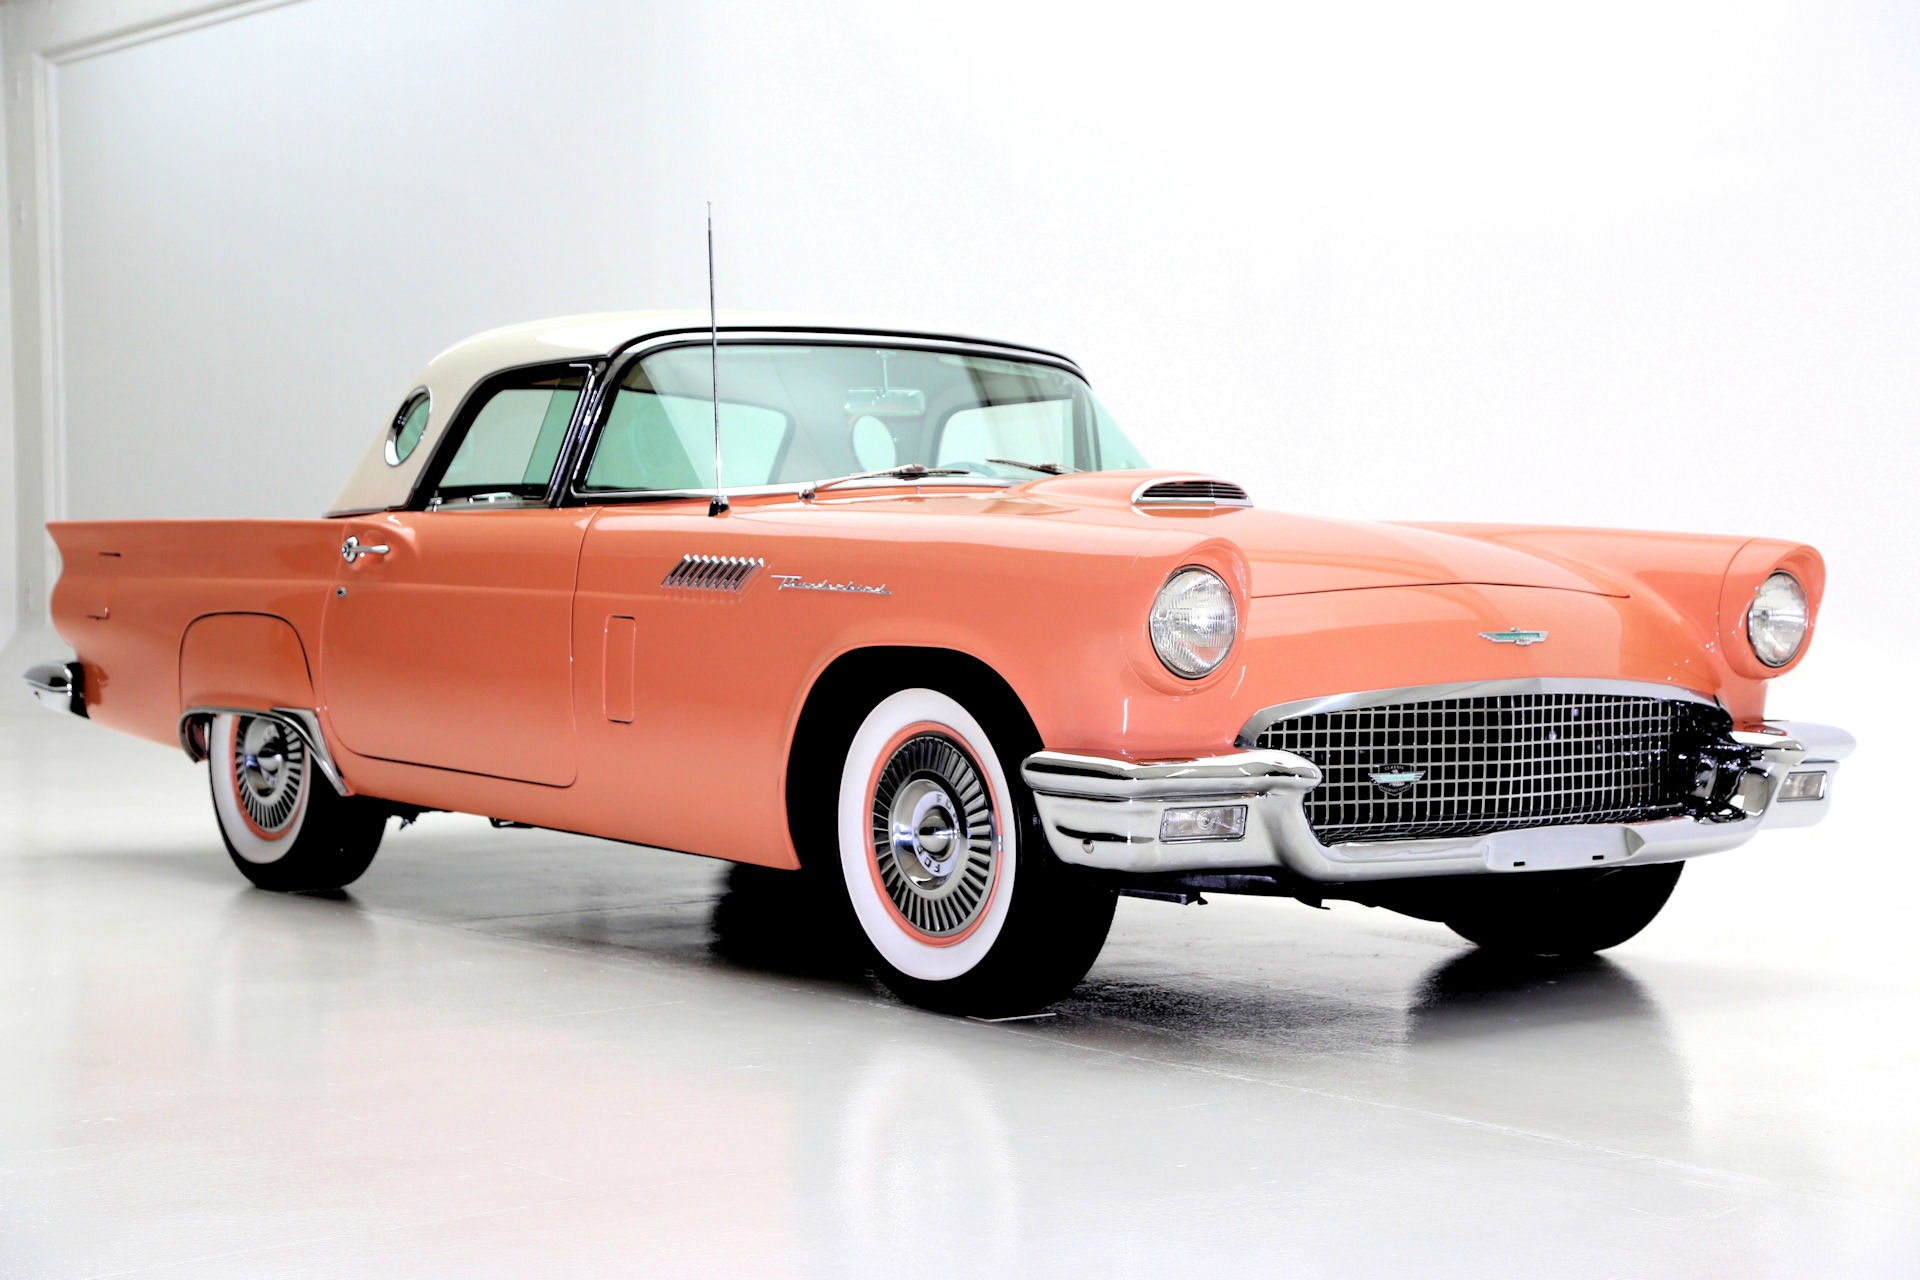 1957 Ford Thunderbird Convertible Coral Sand 312ci